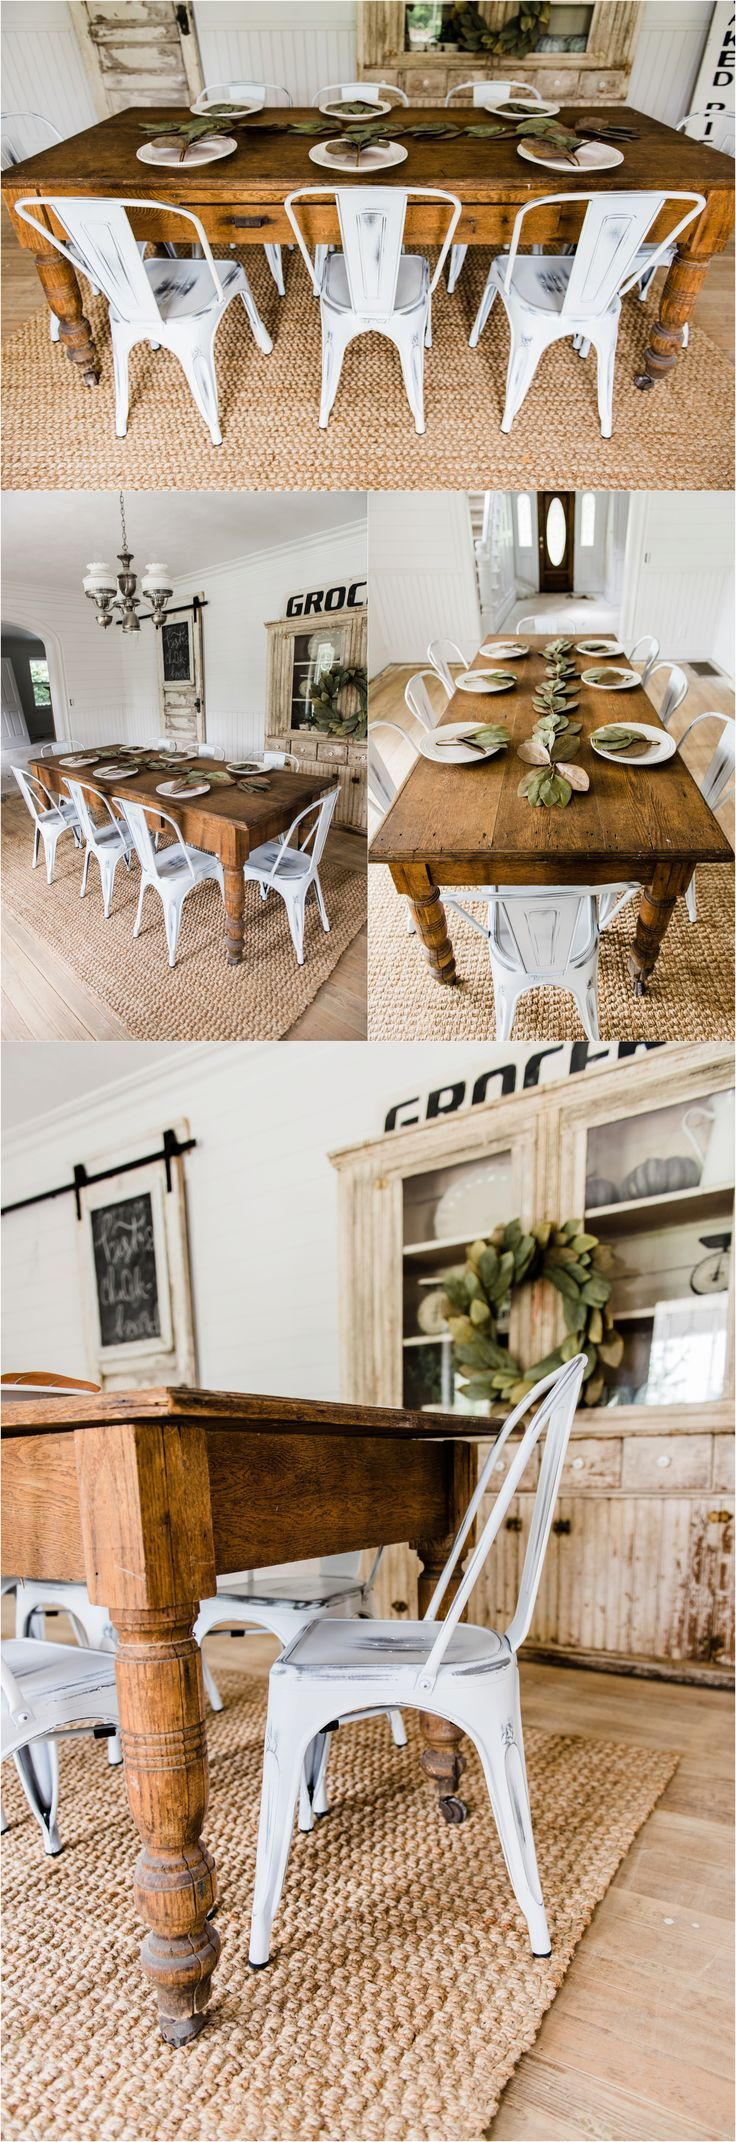 2028 best modern country/farmhouse style images on pinterest